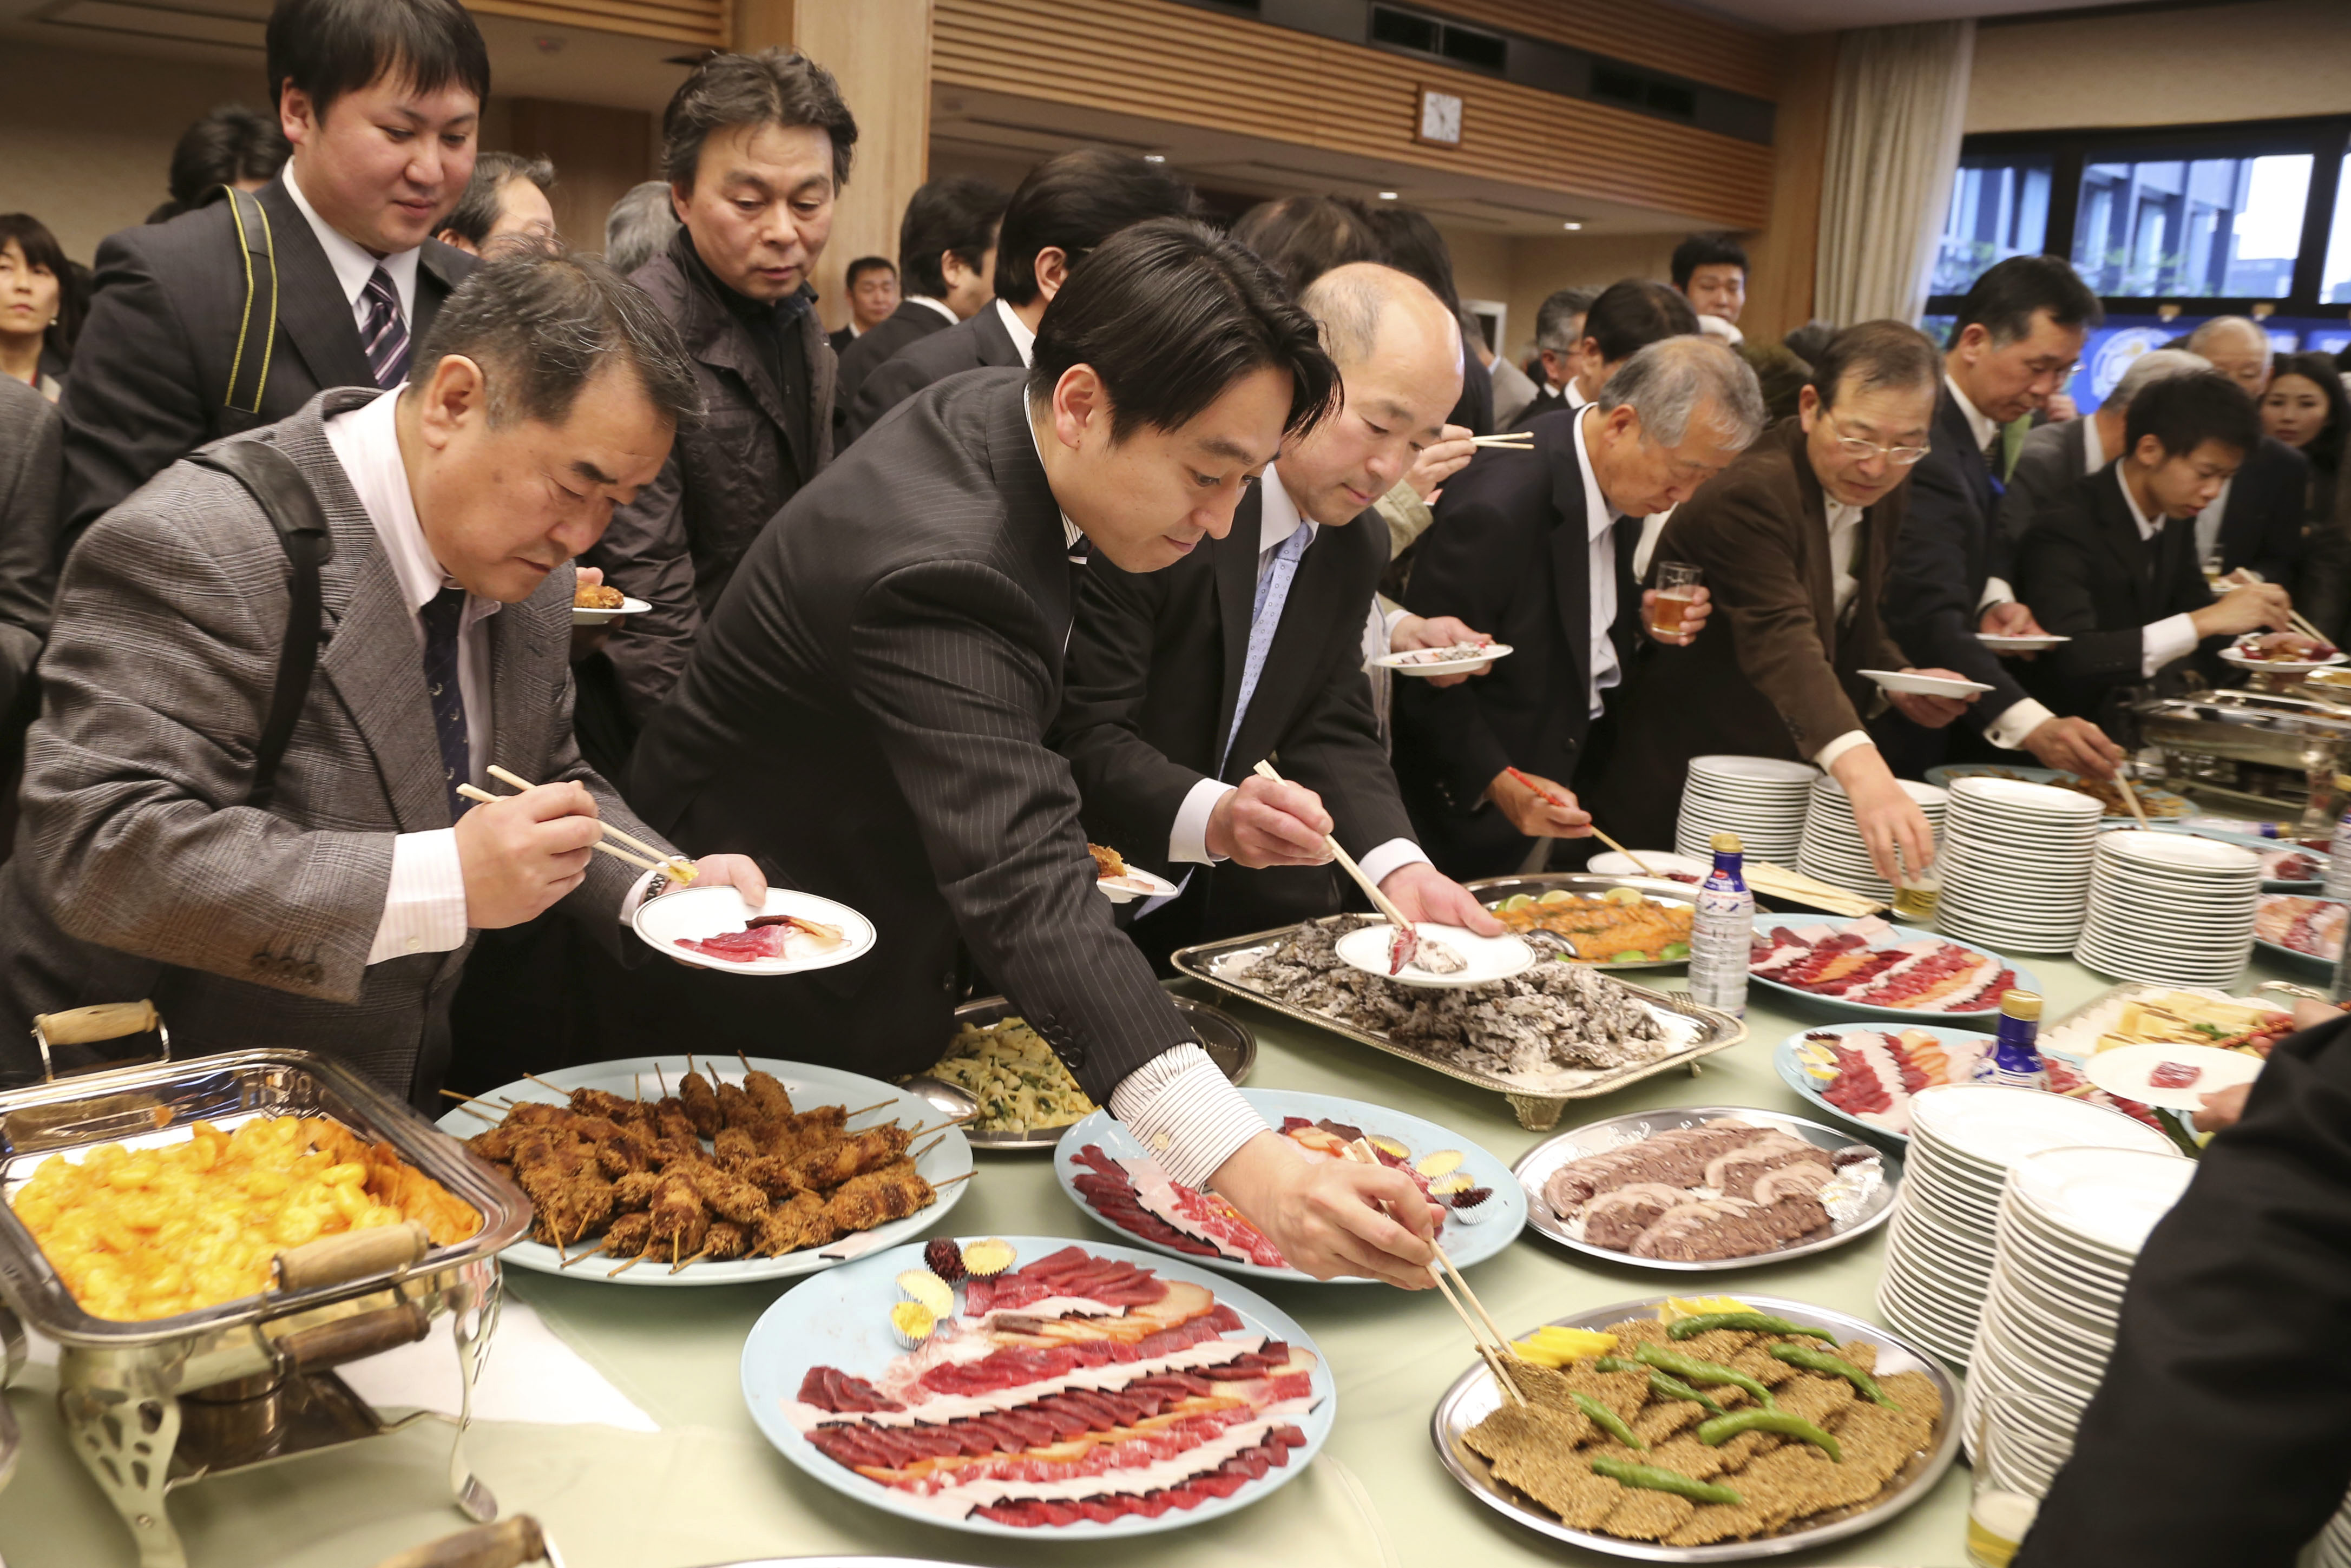 Diet members dine on whale meat in defiance of ICJ ruling ...